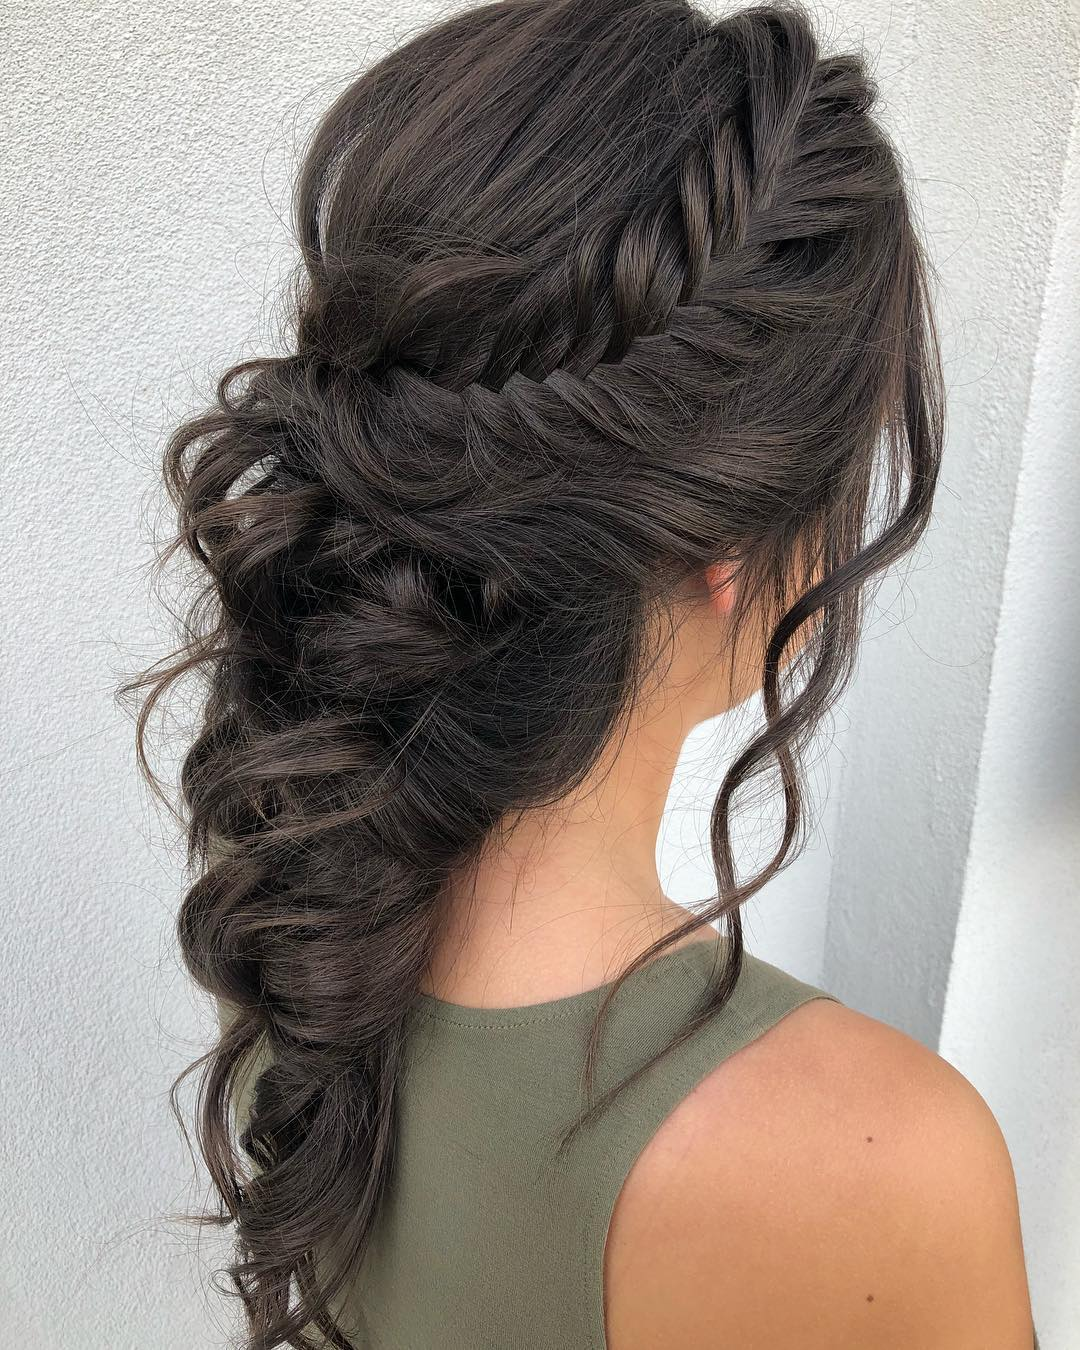 Wedding New Hair Style: 9 Wedding Hair Trends For 2019